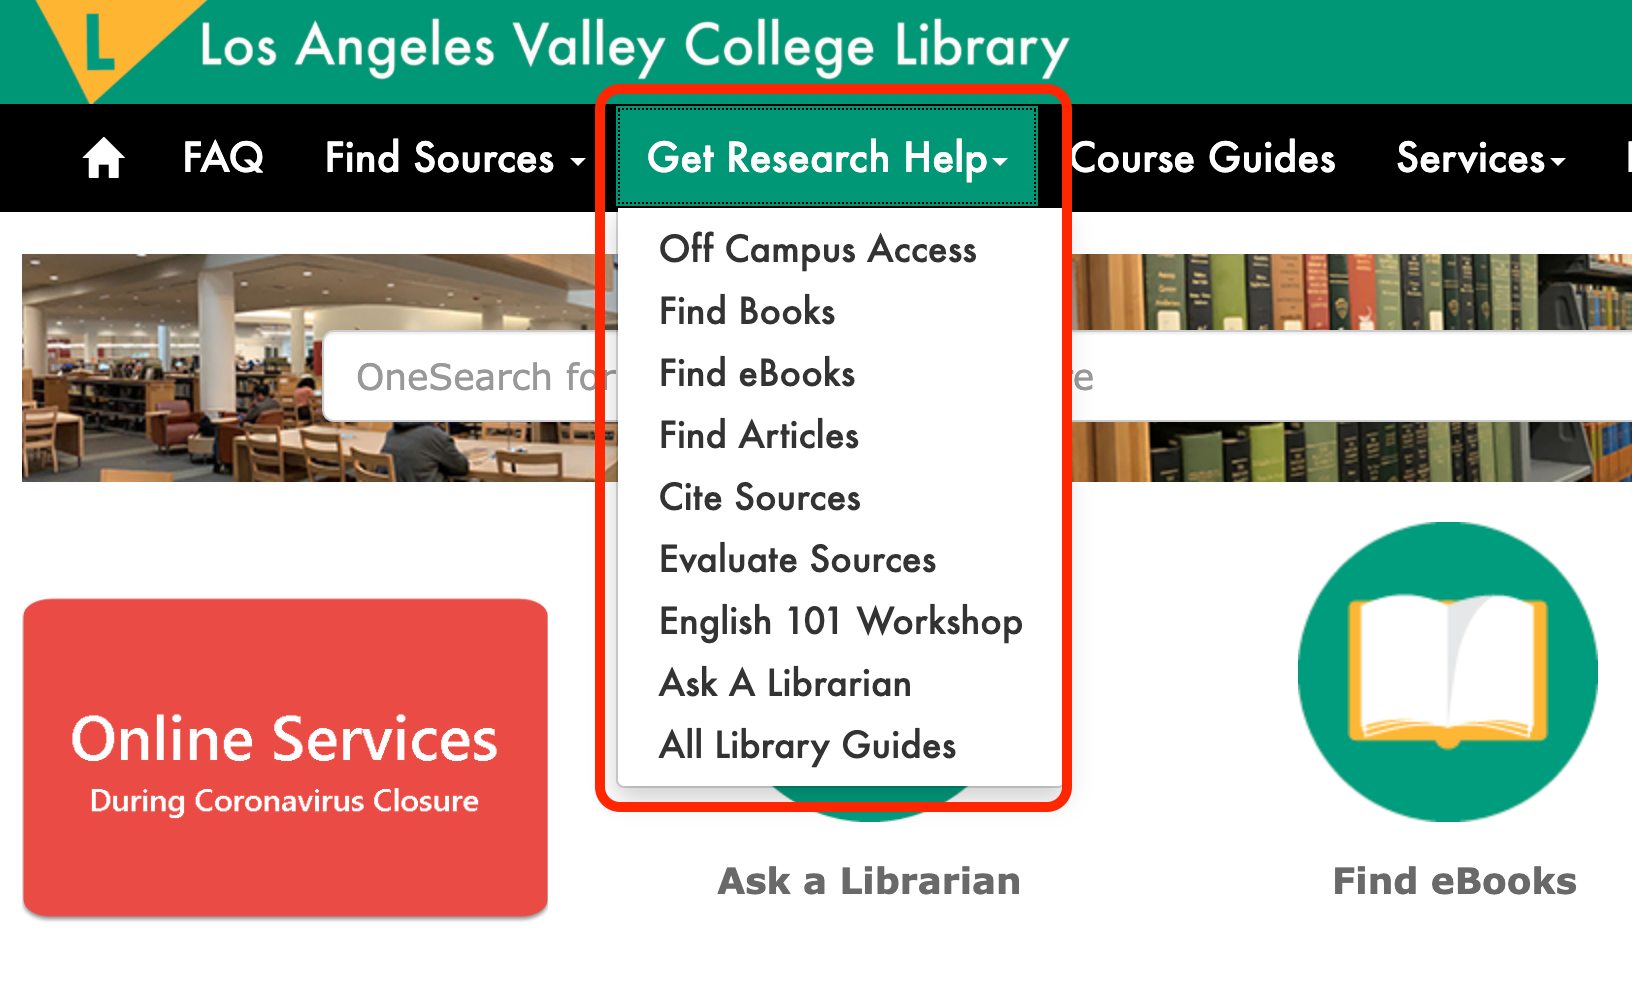 Screenshot of LAVC Website showing the Get Research Help menu options